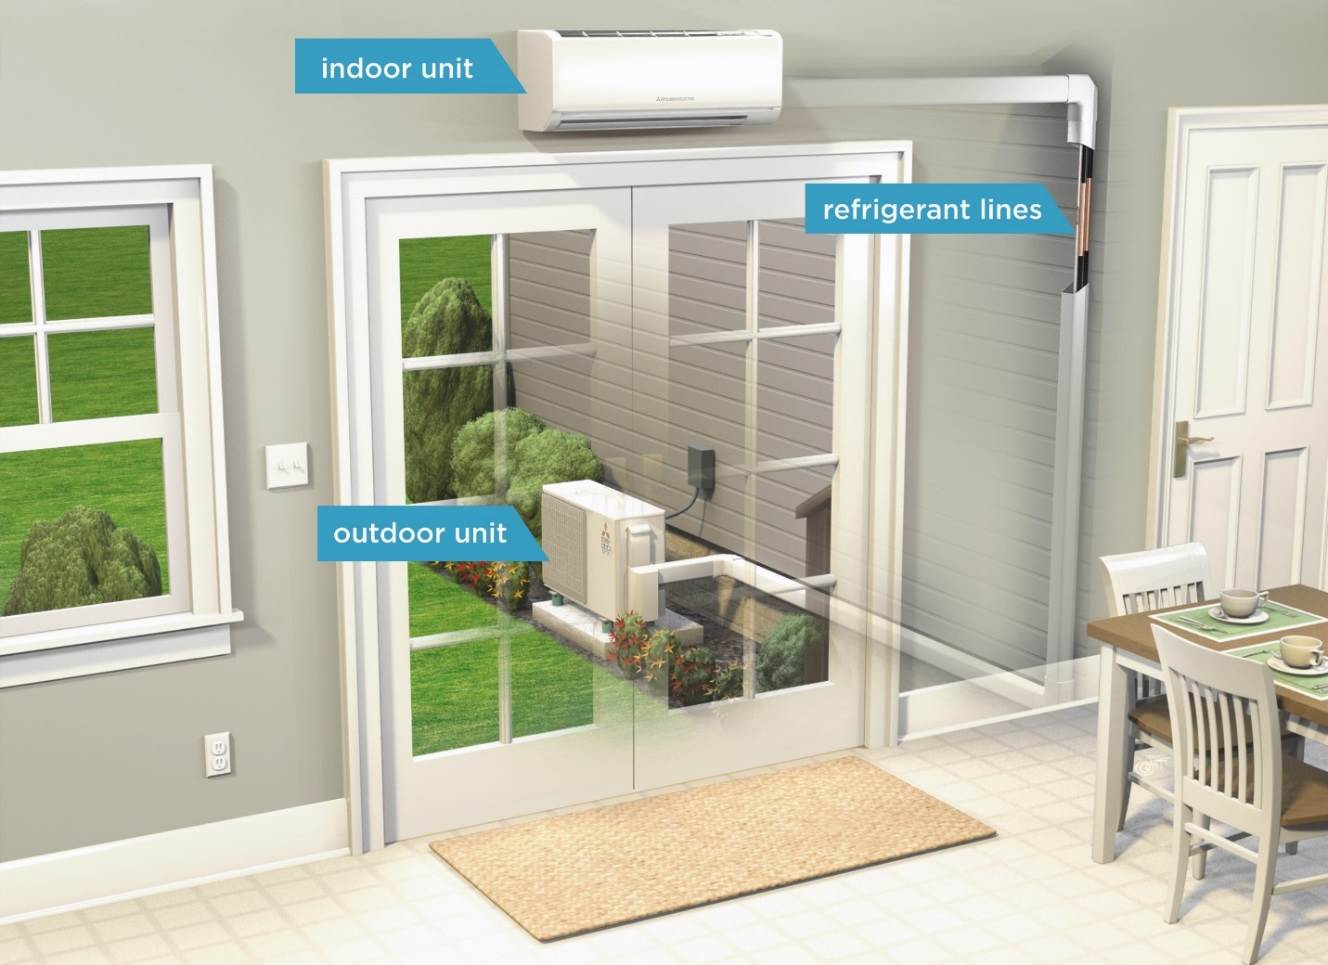 #2D809E Ductless Heating & Cooling Mini Split Systems ENERGY STAR Highly Rated 6599 Split Ductless Heat Pump wallpapers with 1328x965 px on helpvideos.info - Air Conditioners, Air Coolers and more